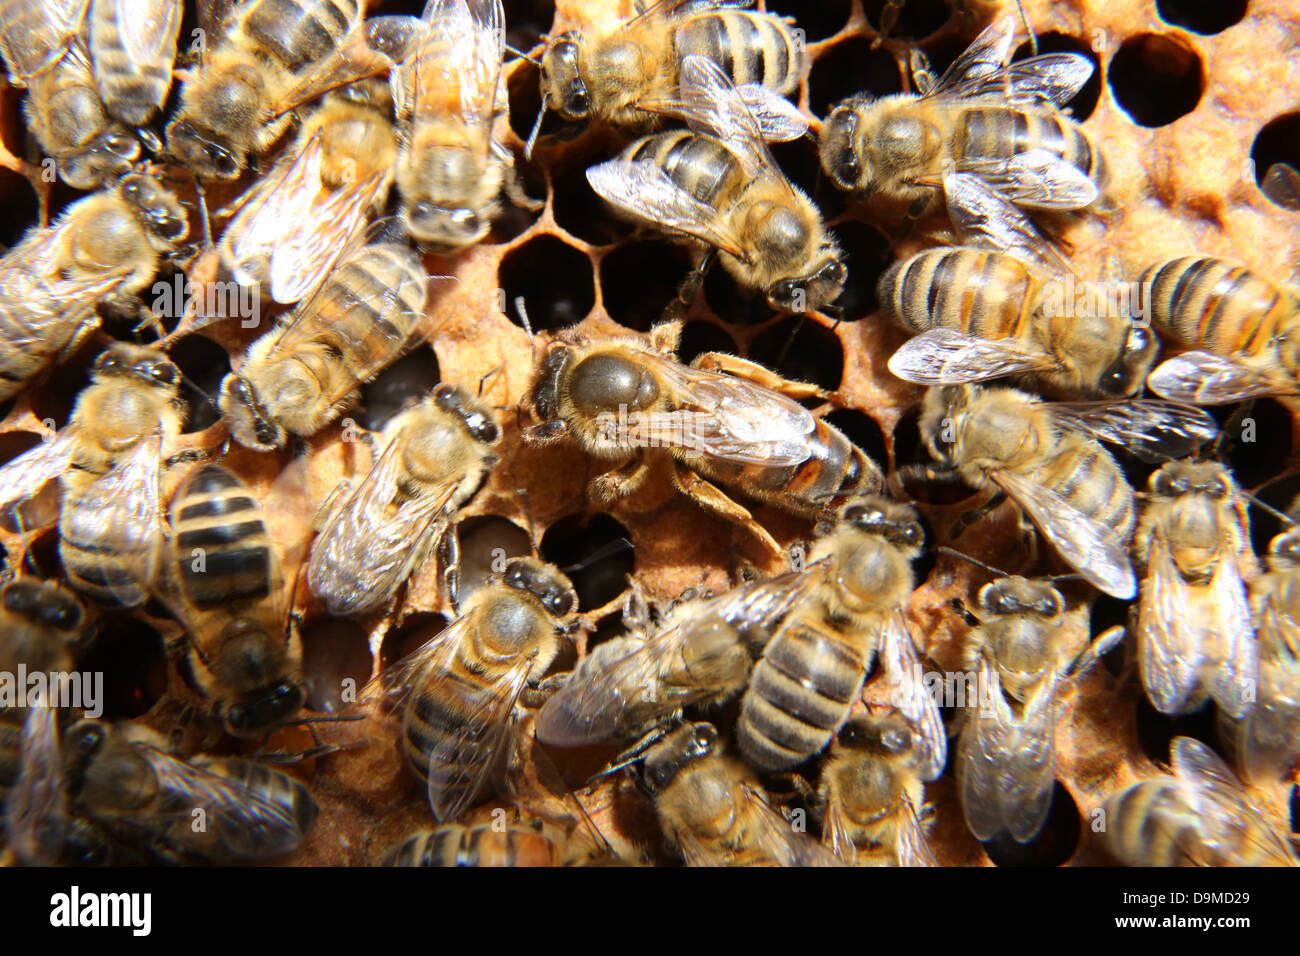 Queen Bee Surrounded by Workers on Frame From Hive - Stock Image